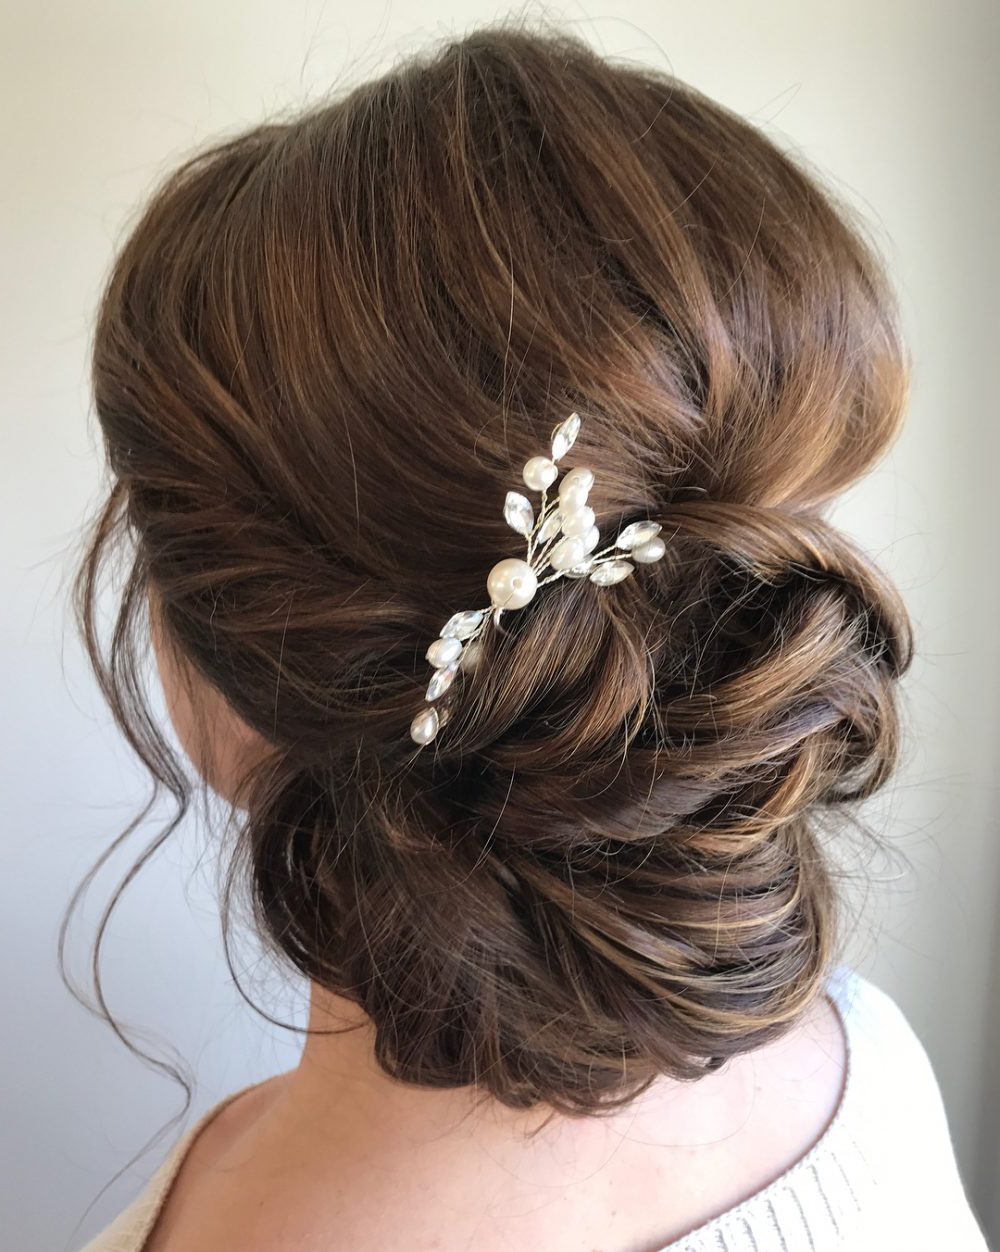 33 Breathtaking Loose Updos That Are Trendy For 2019 With Latest Upswept Hairstyles For Wedding (Gallery 20 of 20)